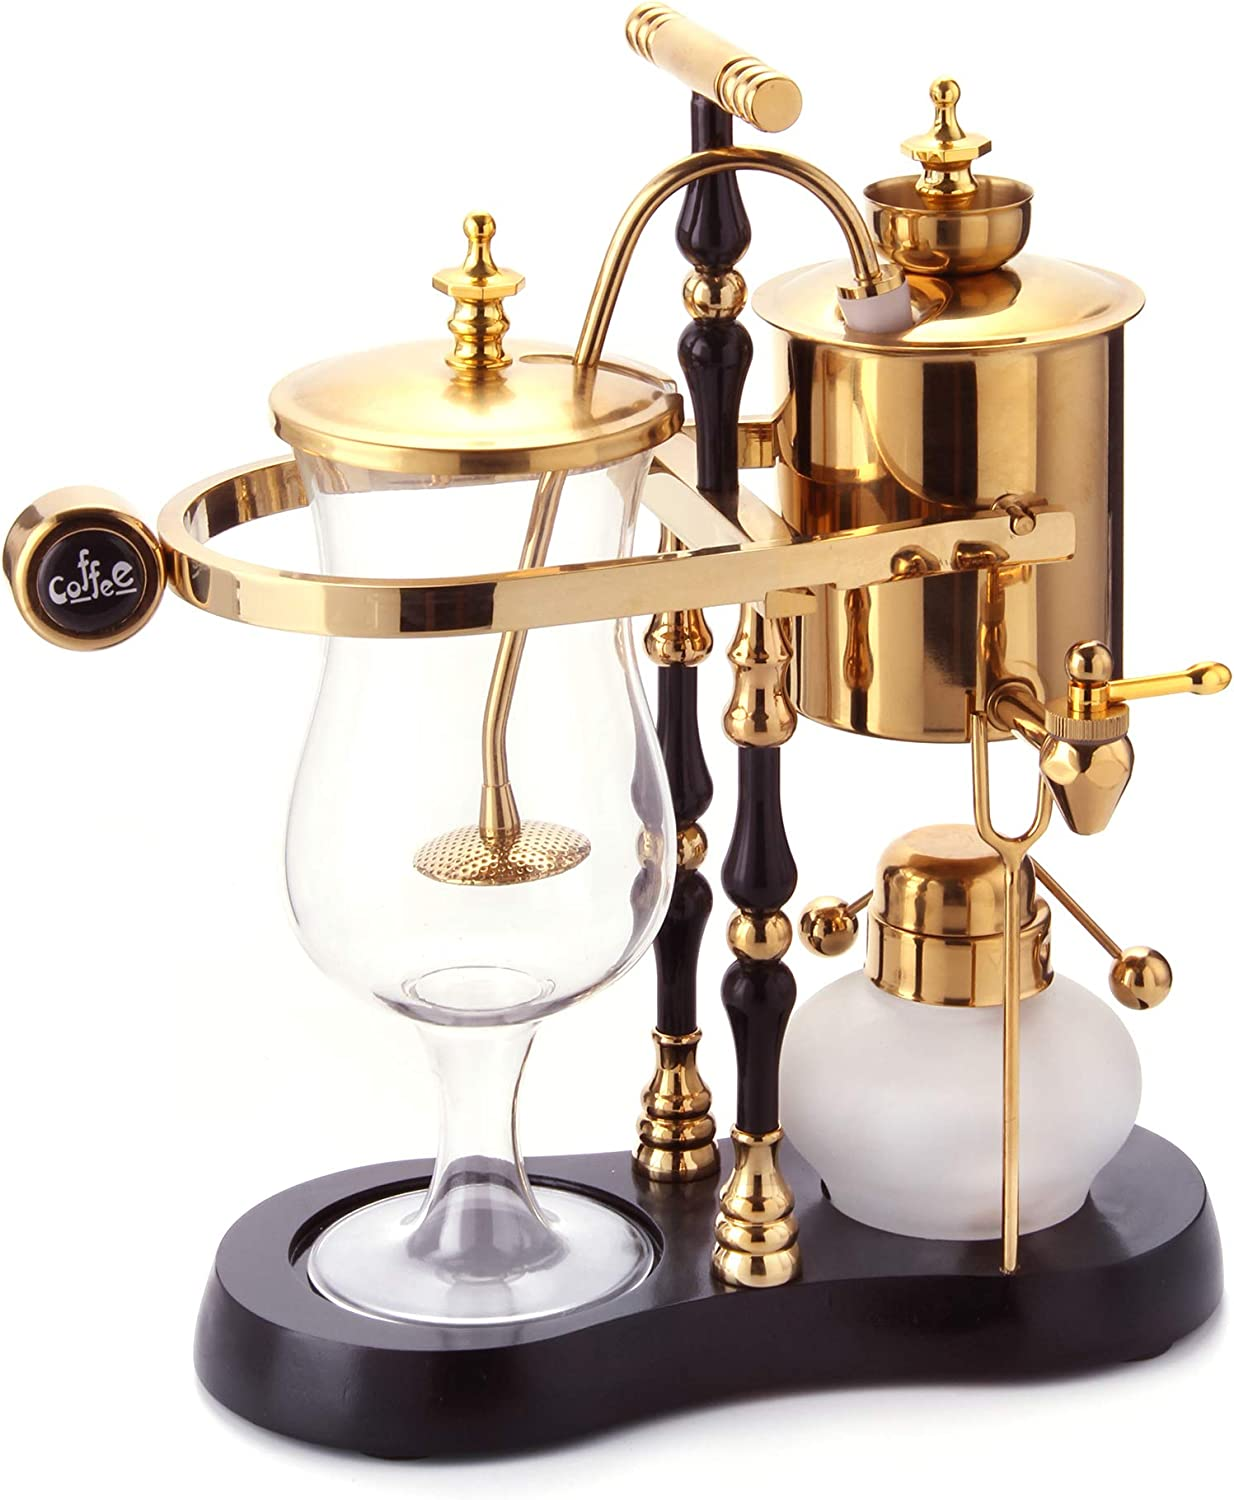 Diguo Belgian Luxury Siphon Coffee Maker